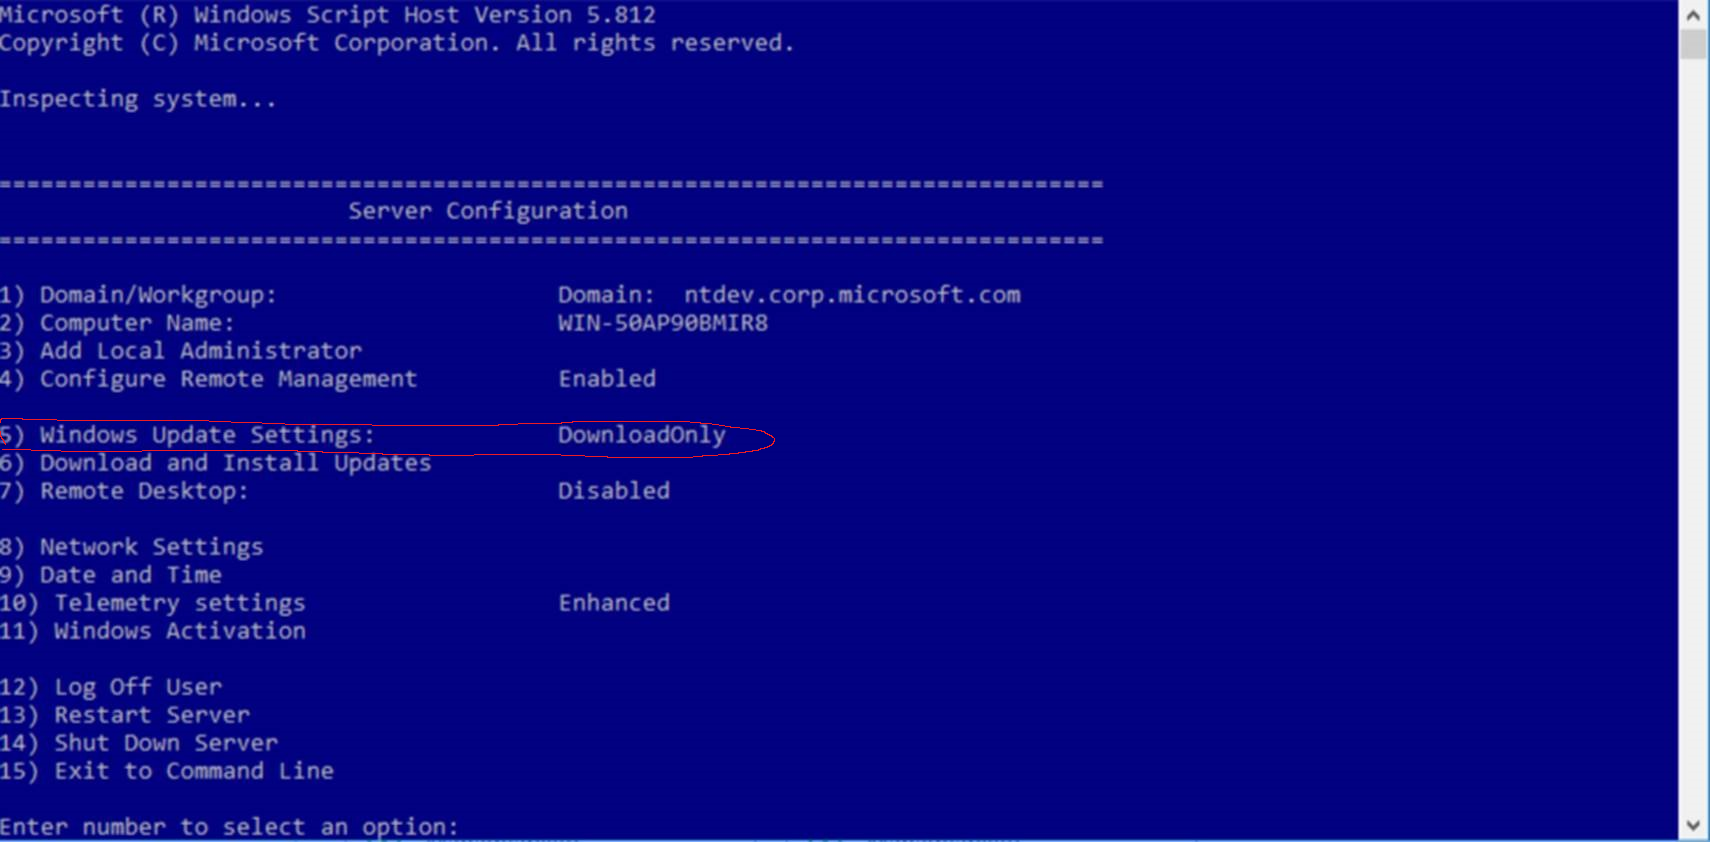 Useful and Secure PowerShell Commands (CMDs) For Windows 2016 & 2019 Server